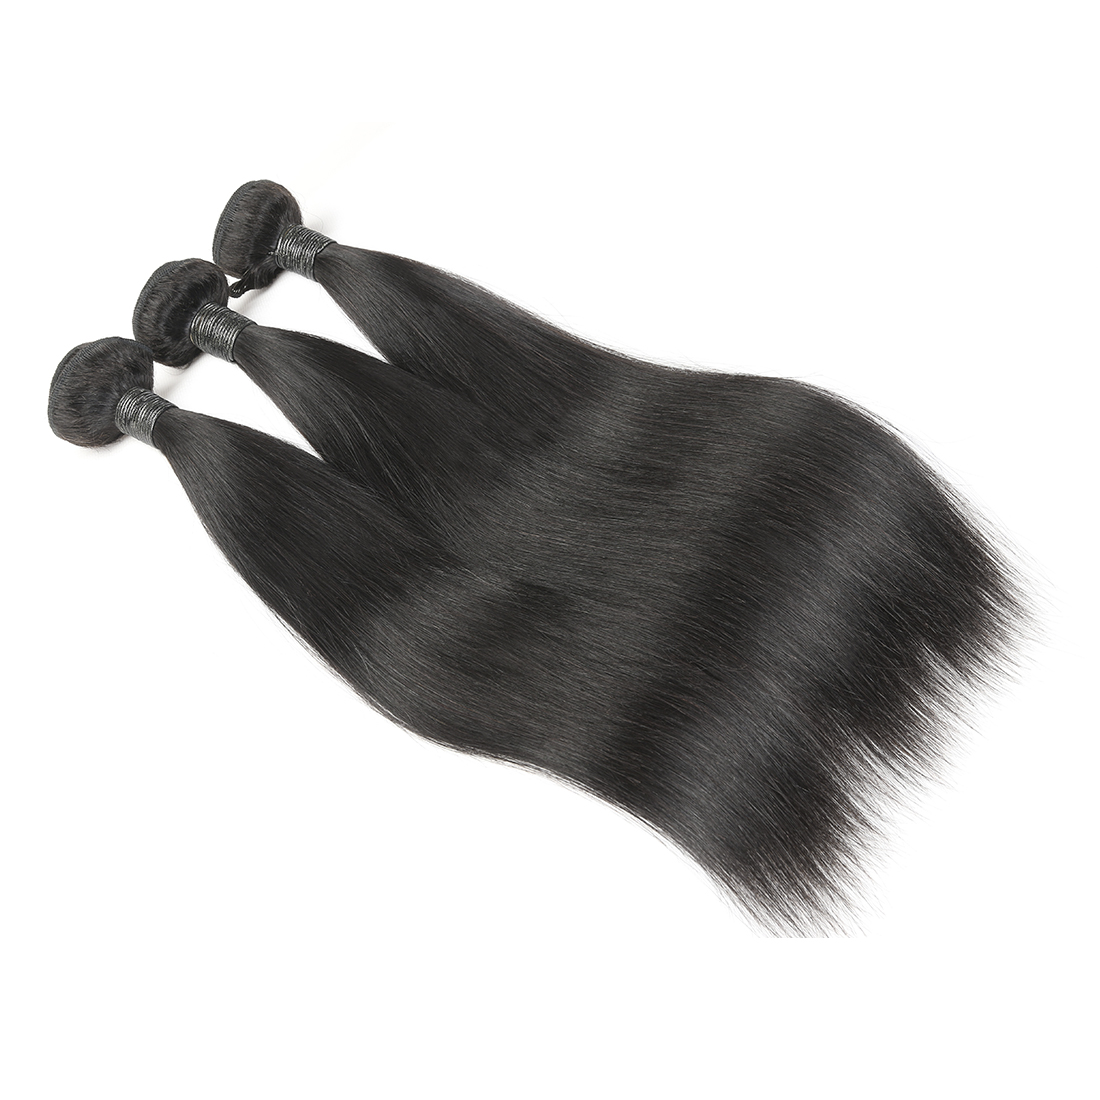 8A Malaysian Straight Human Virgin Hair Weave 3 Bundles With Lace Frontal